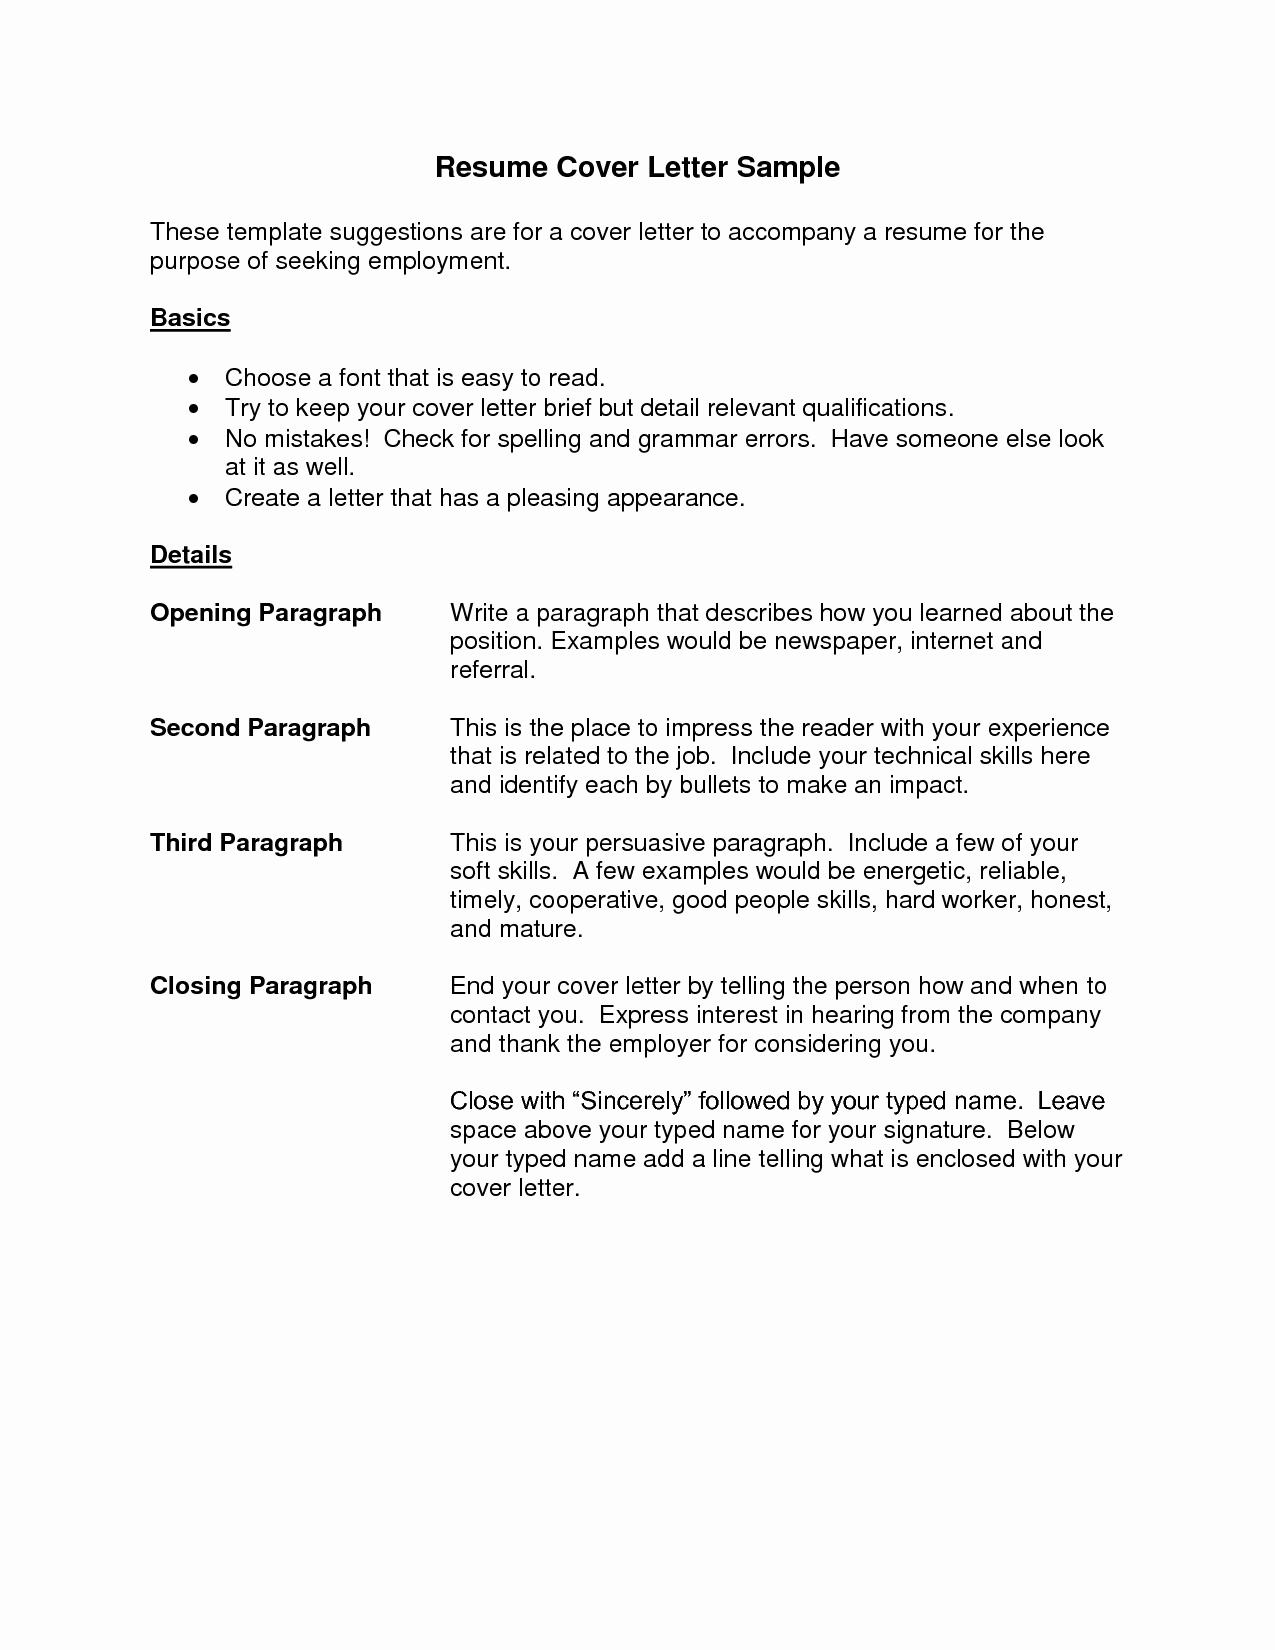 Employer Name Example - Proper format for Resume Luxury Fresh How to Write A Proper Resume